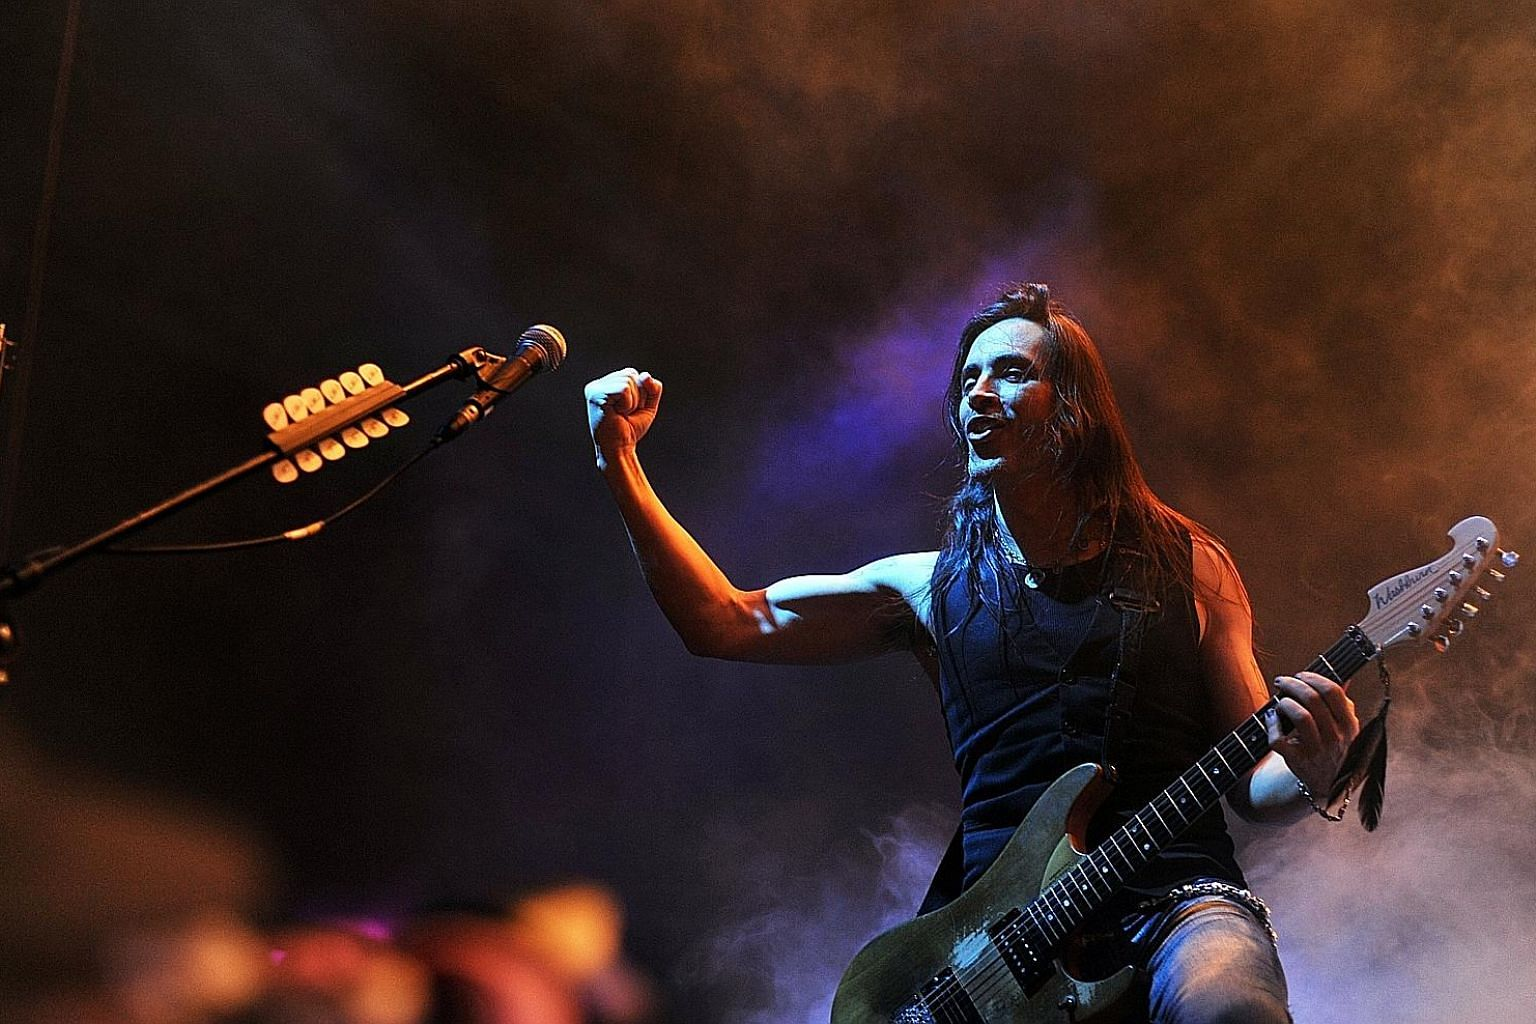 Portuguese guitarist Nuno Bettencourt was funny and prone to making self-deprecating jokes.